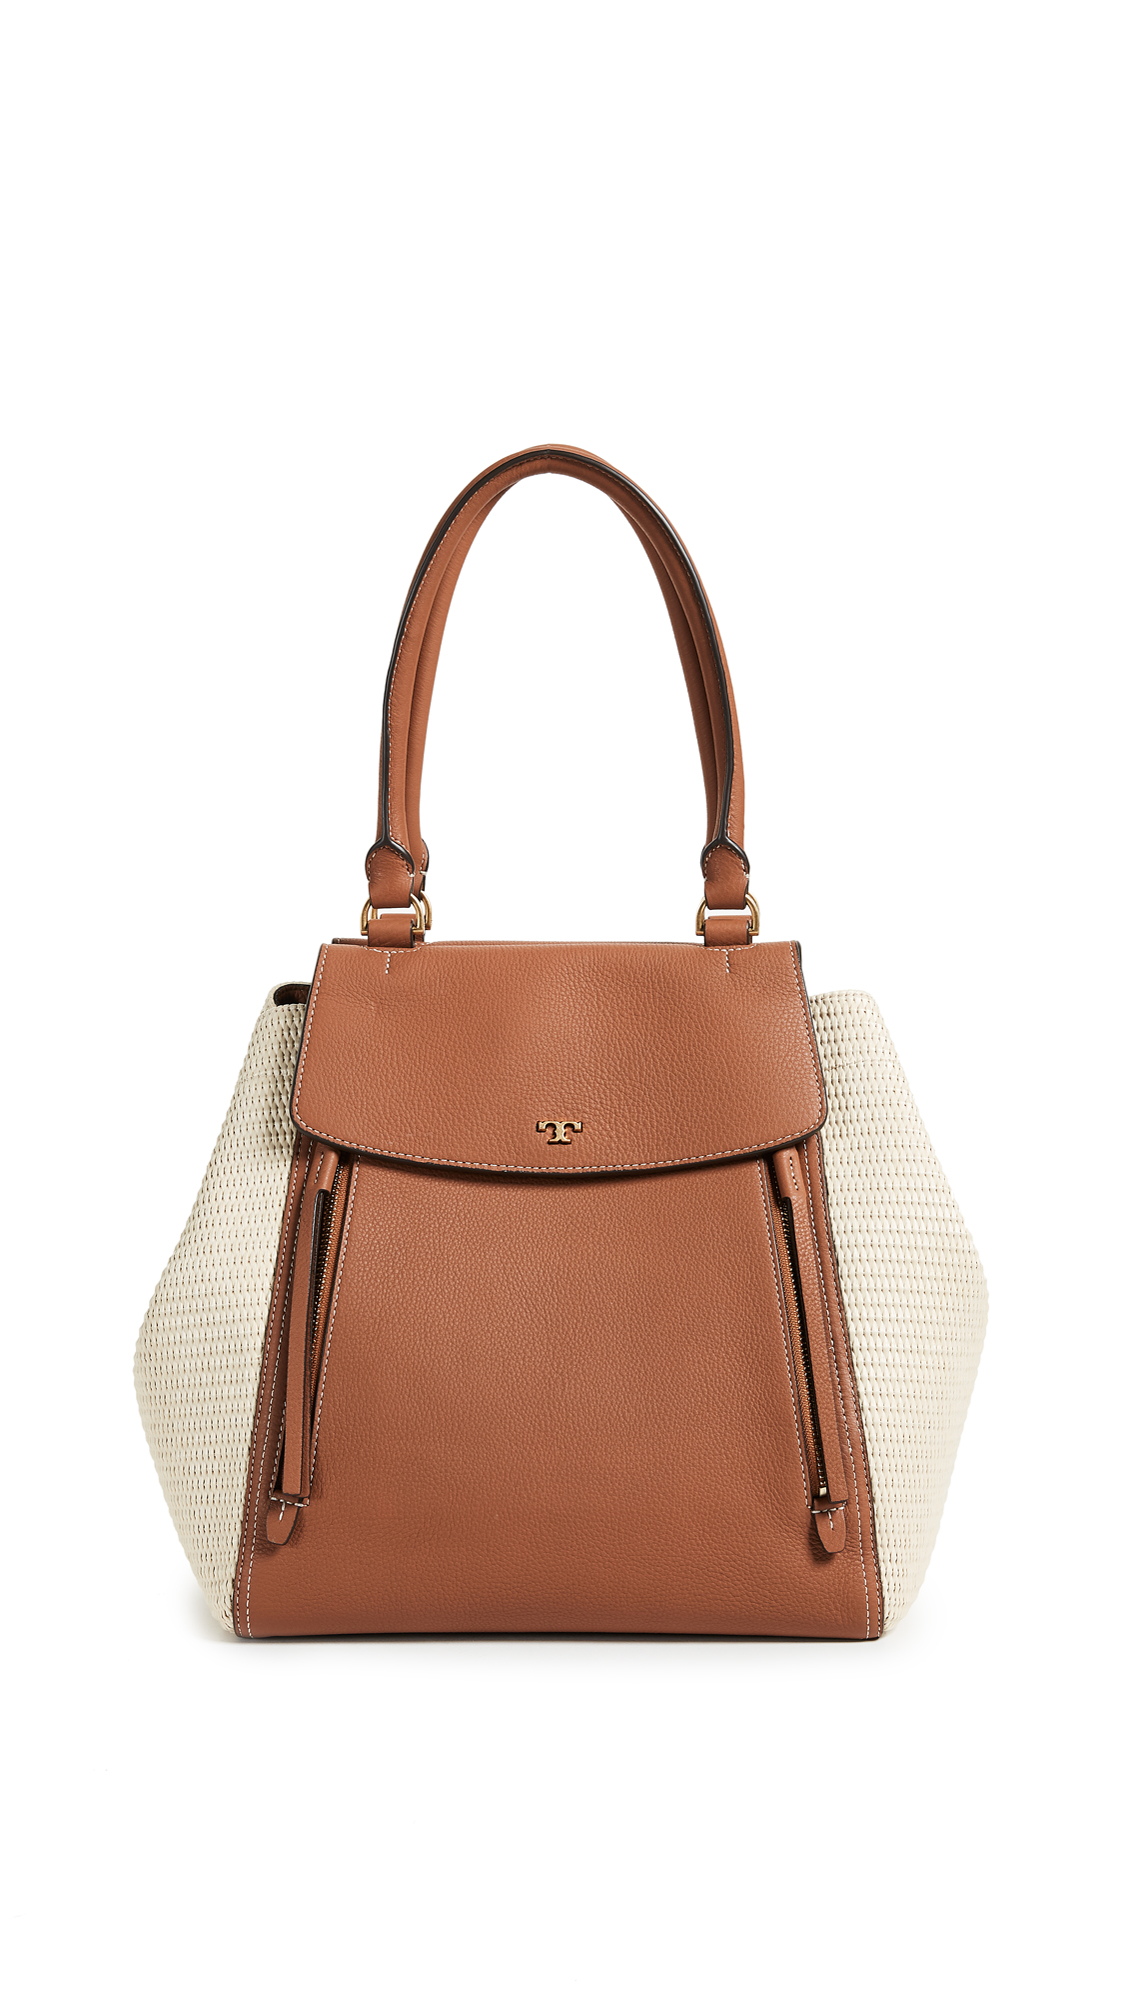 Tory Burch Half Moon Straw Tote